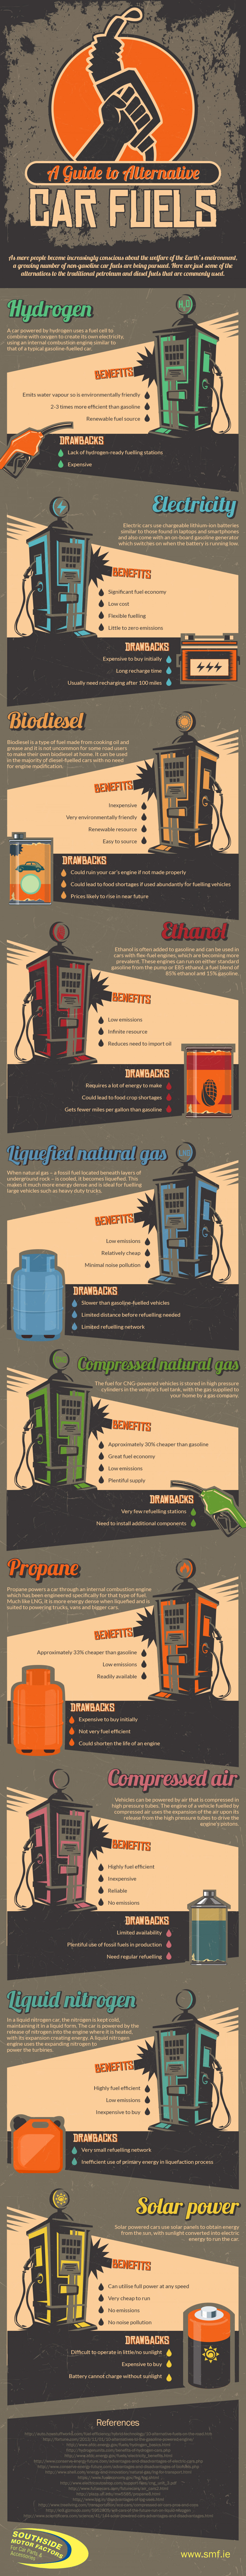 A Guide to Alternative Car Fuels Infographic